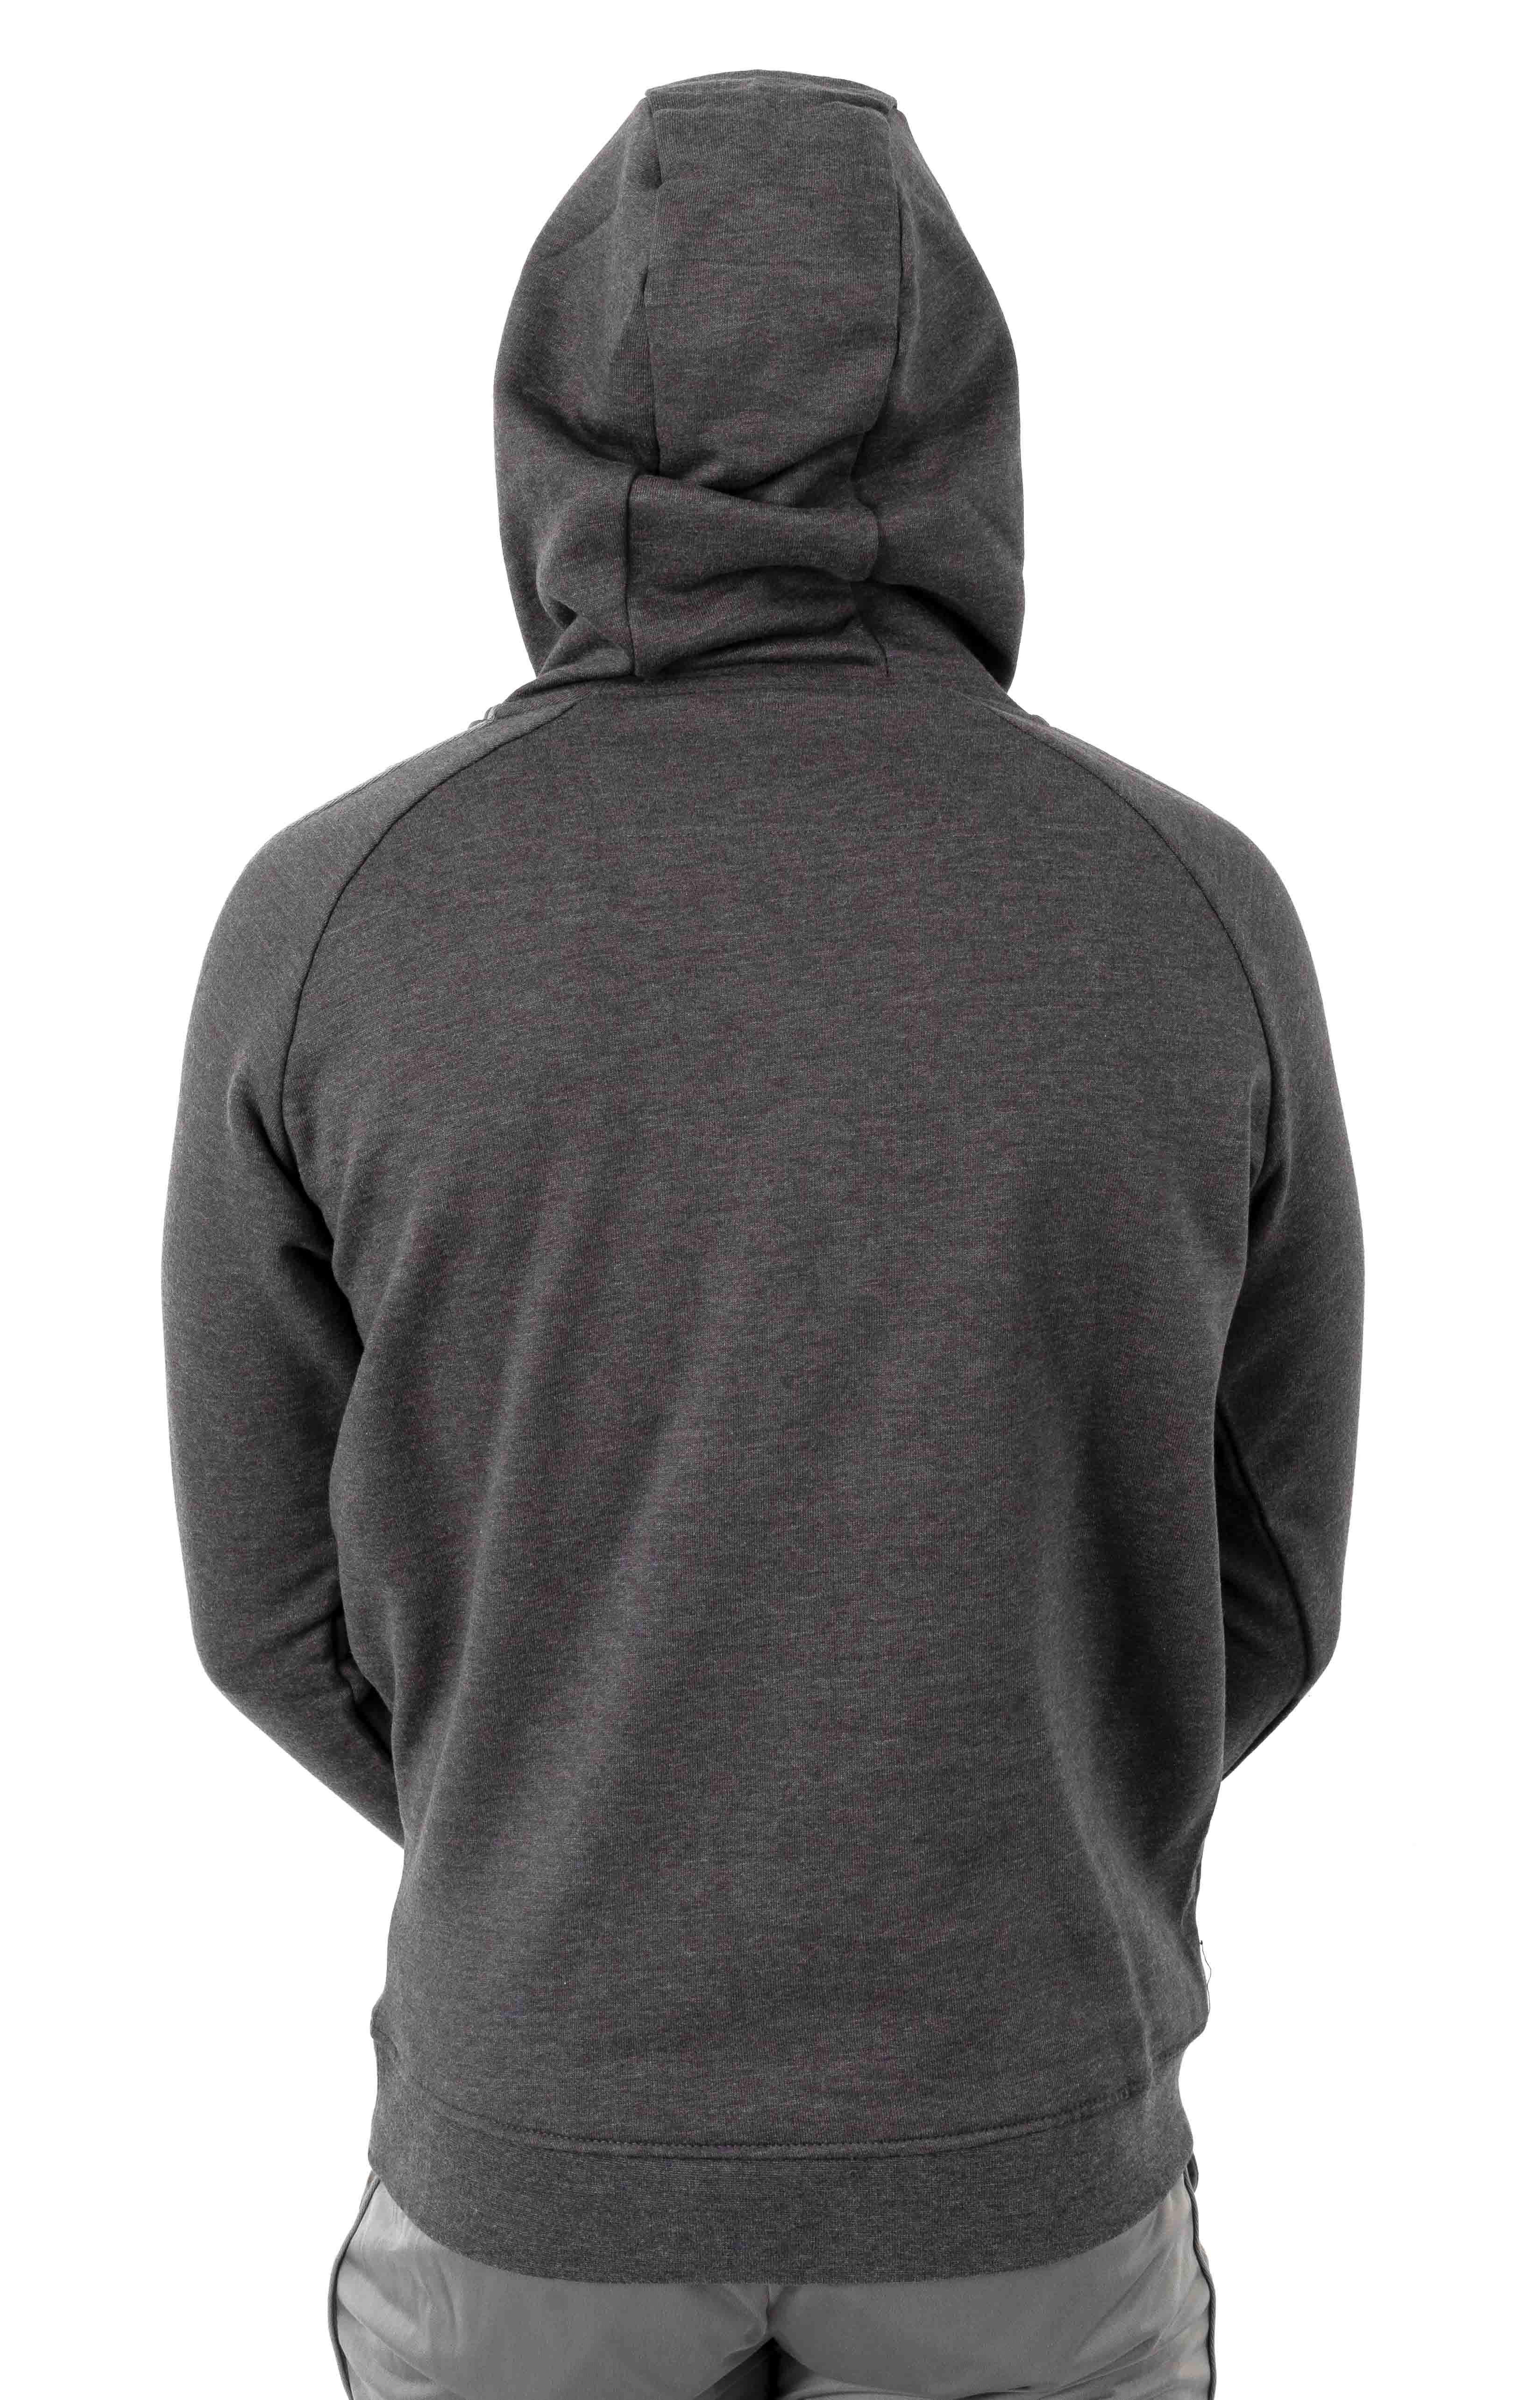 222 Banda Dinto Pullover Hoodie - Grey/Winter White  3